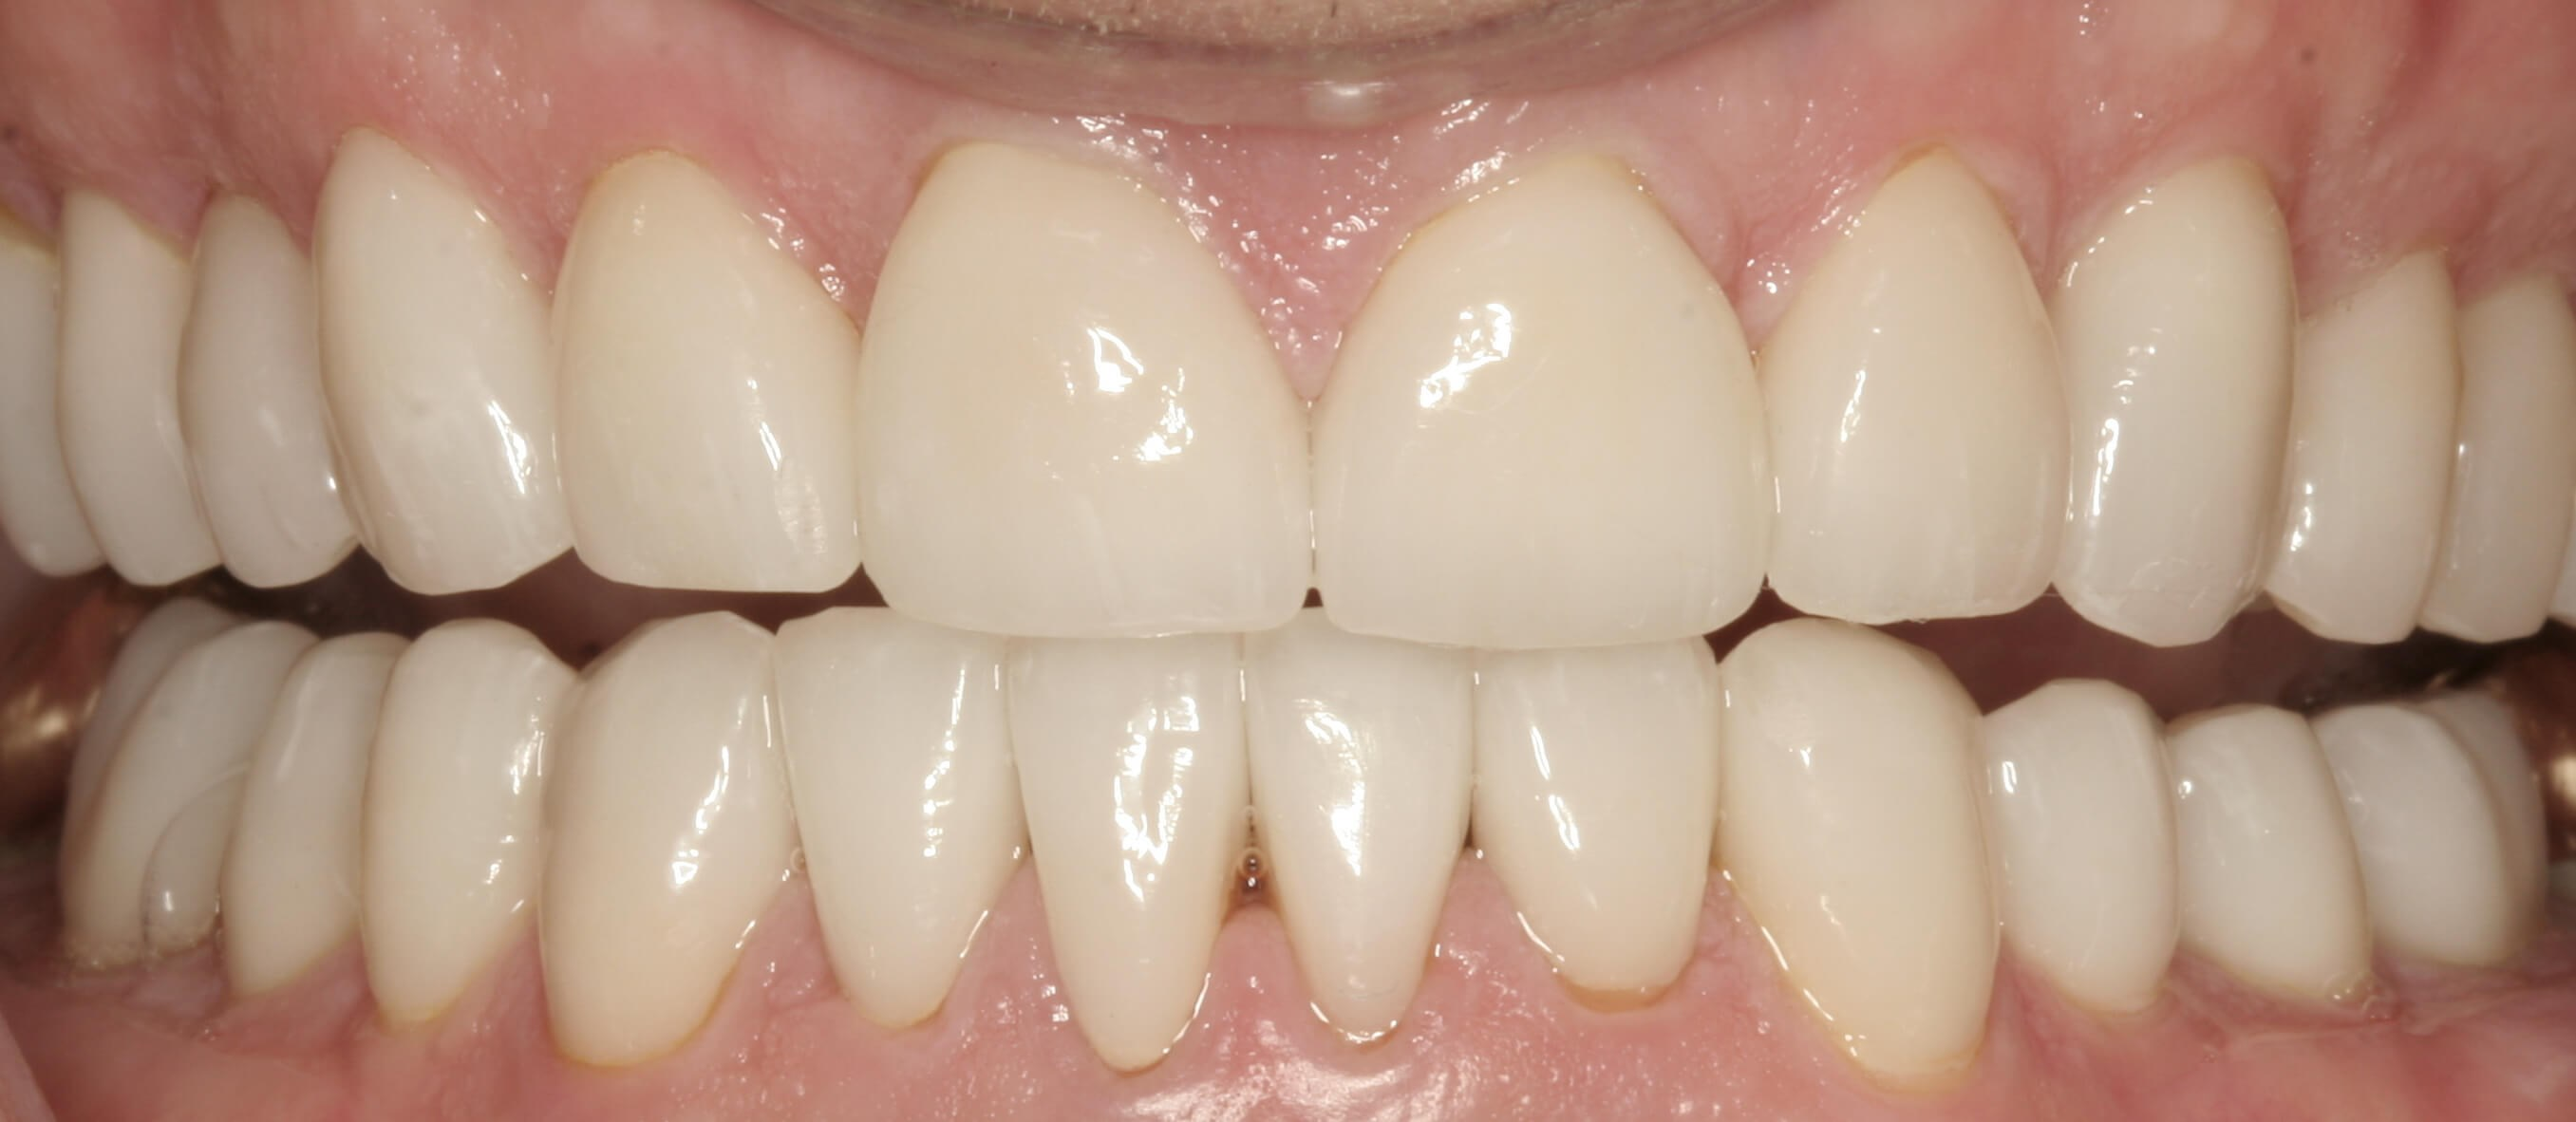 Severe Wear Full Mouth Case After